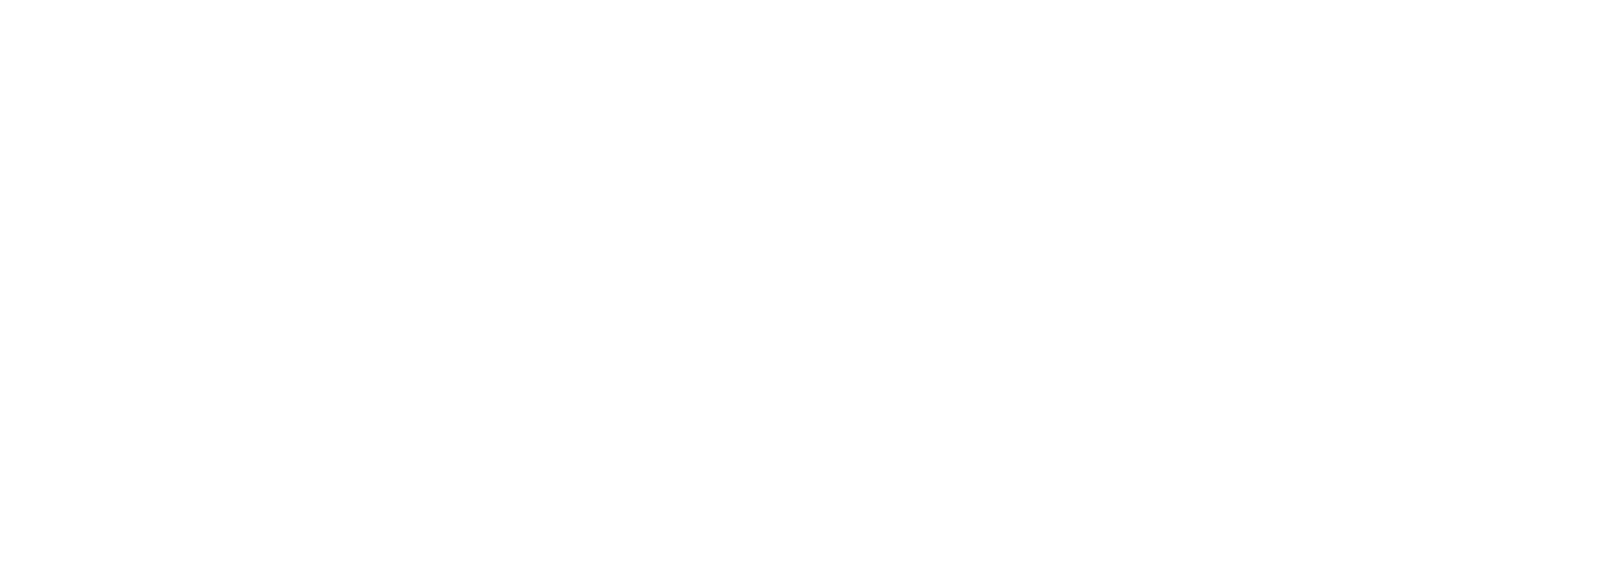 singapore-main-events-page-header